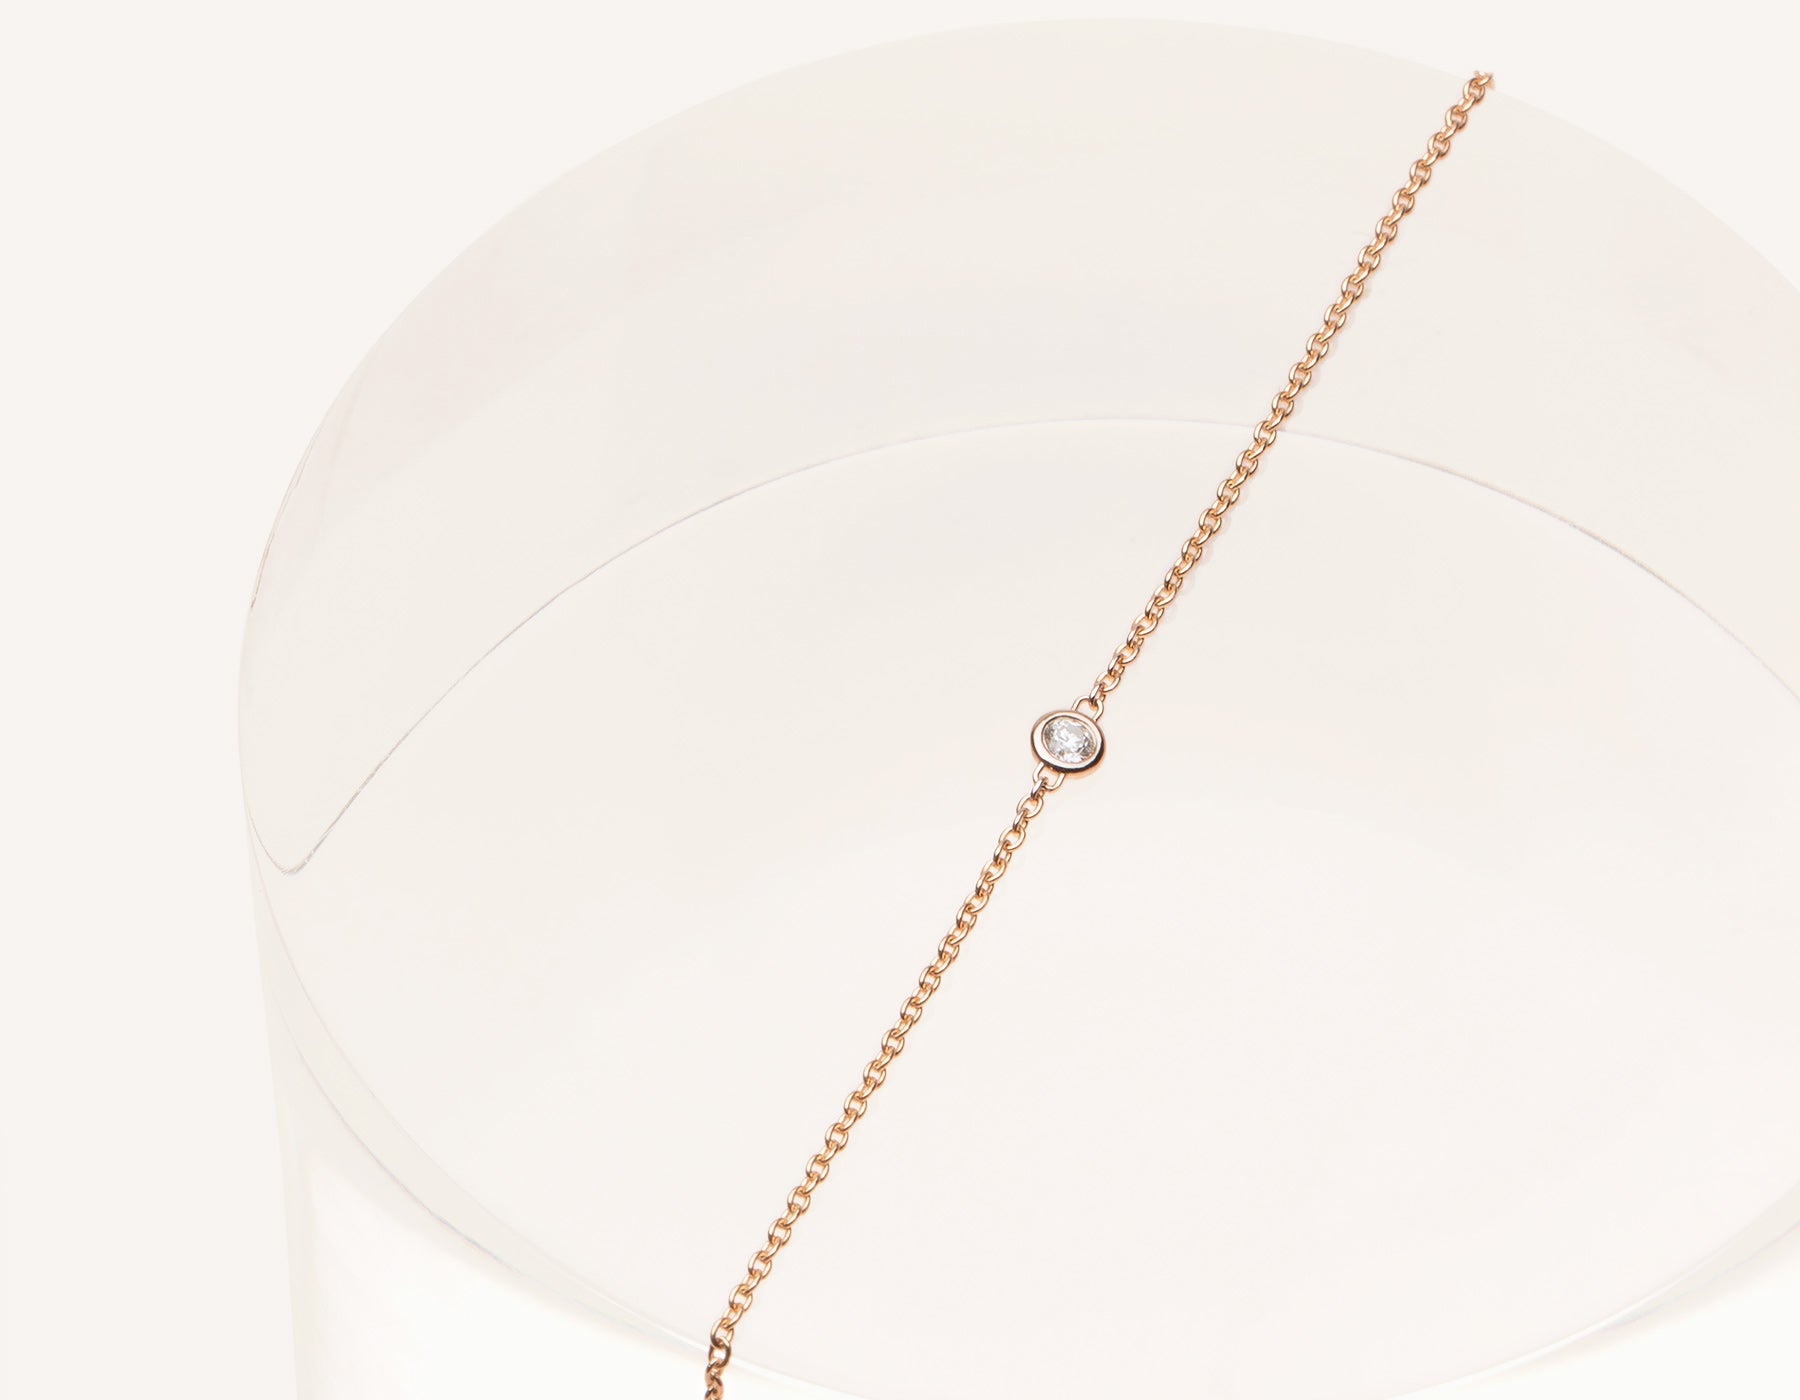 Simple classic 14k solid gold .04 carat round brilliant cut Solitaire Diamond Bracelet on delicate chain Vrai & Oro, 14K Rose Gold